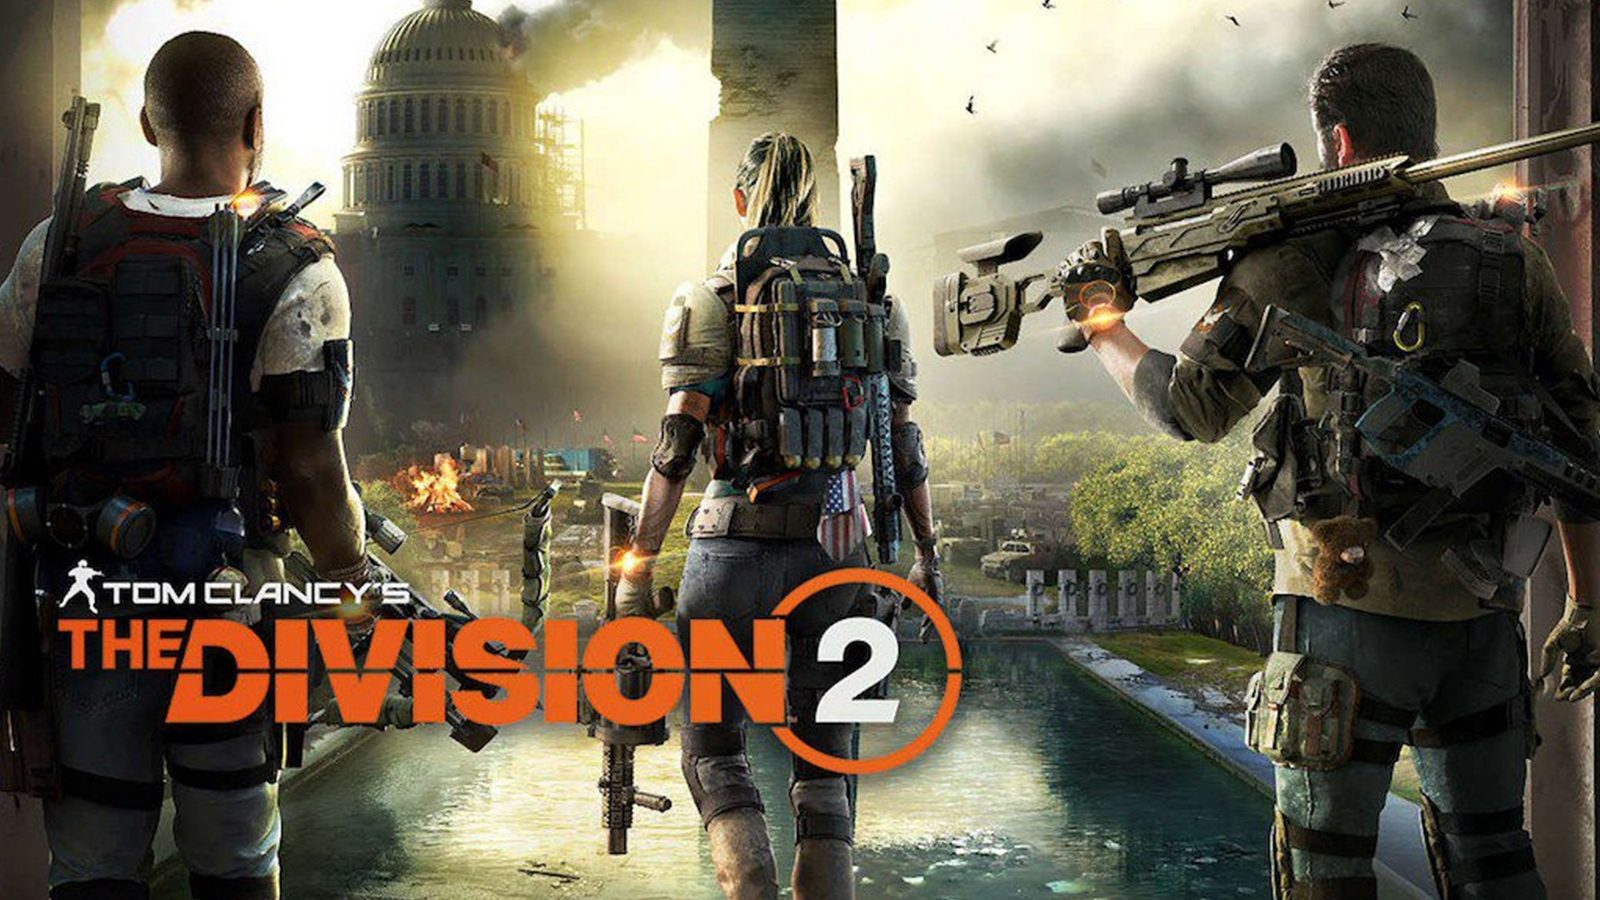 division 2 early access